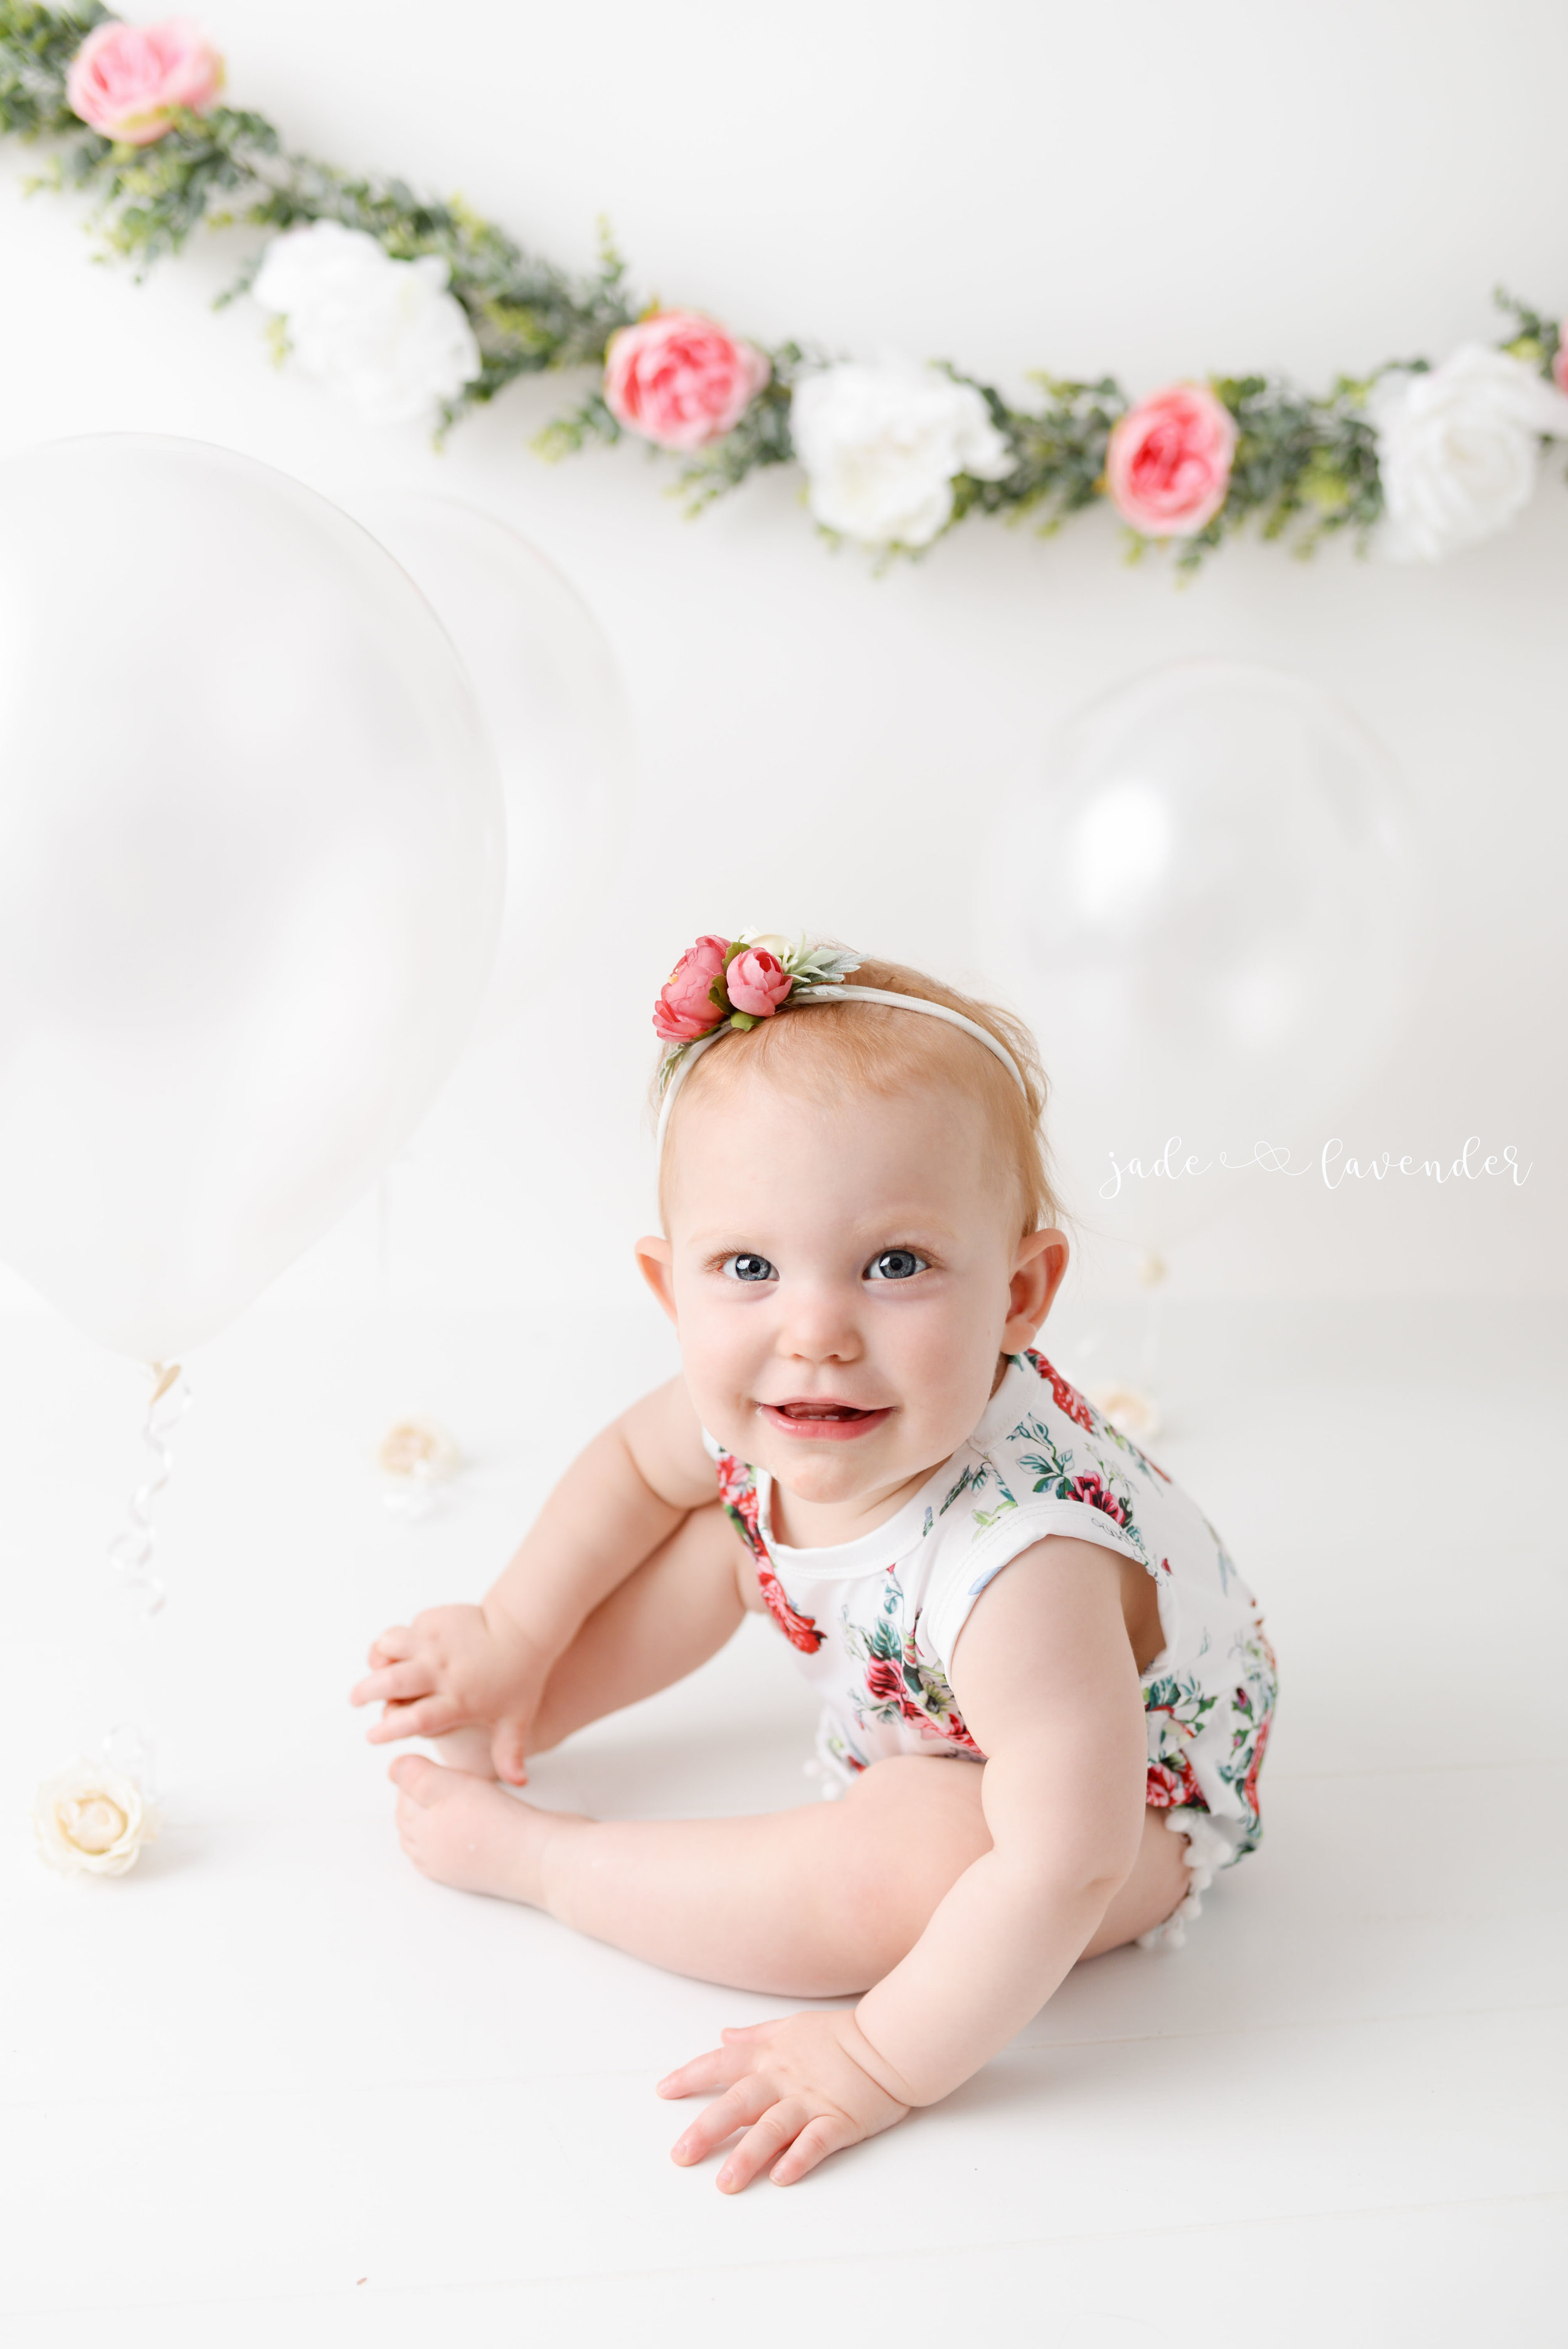 cake-smash-one-year-photos-baby-photography-newborn-infant-images-spokane-washington (2 of 6).jpg